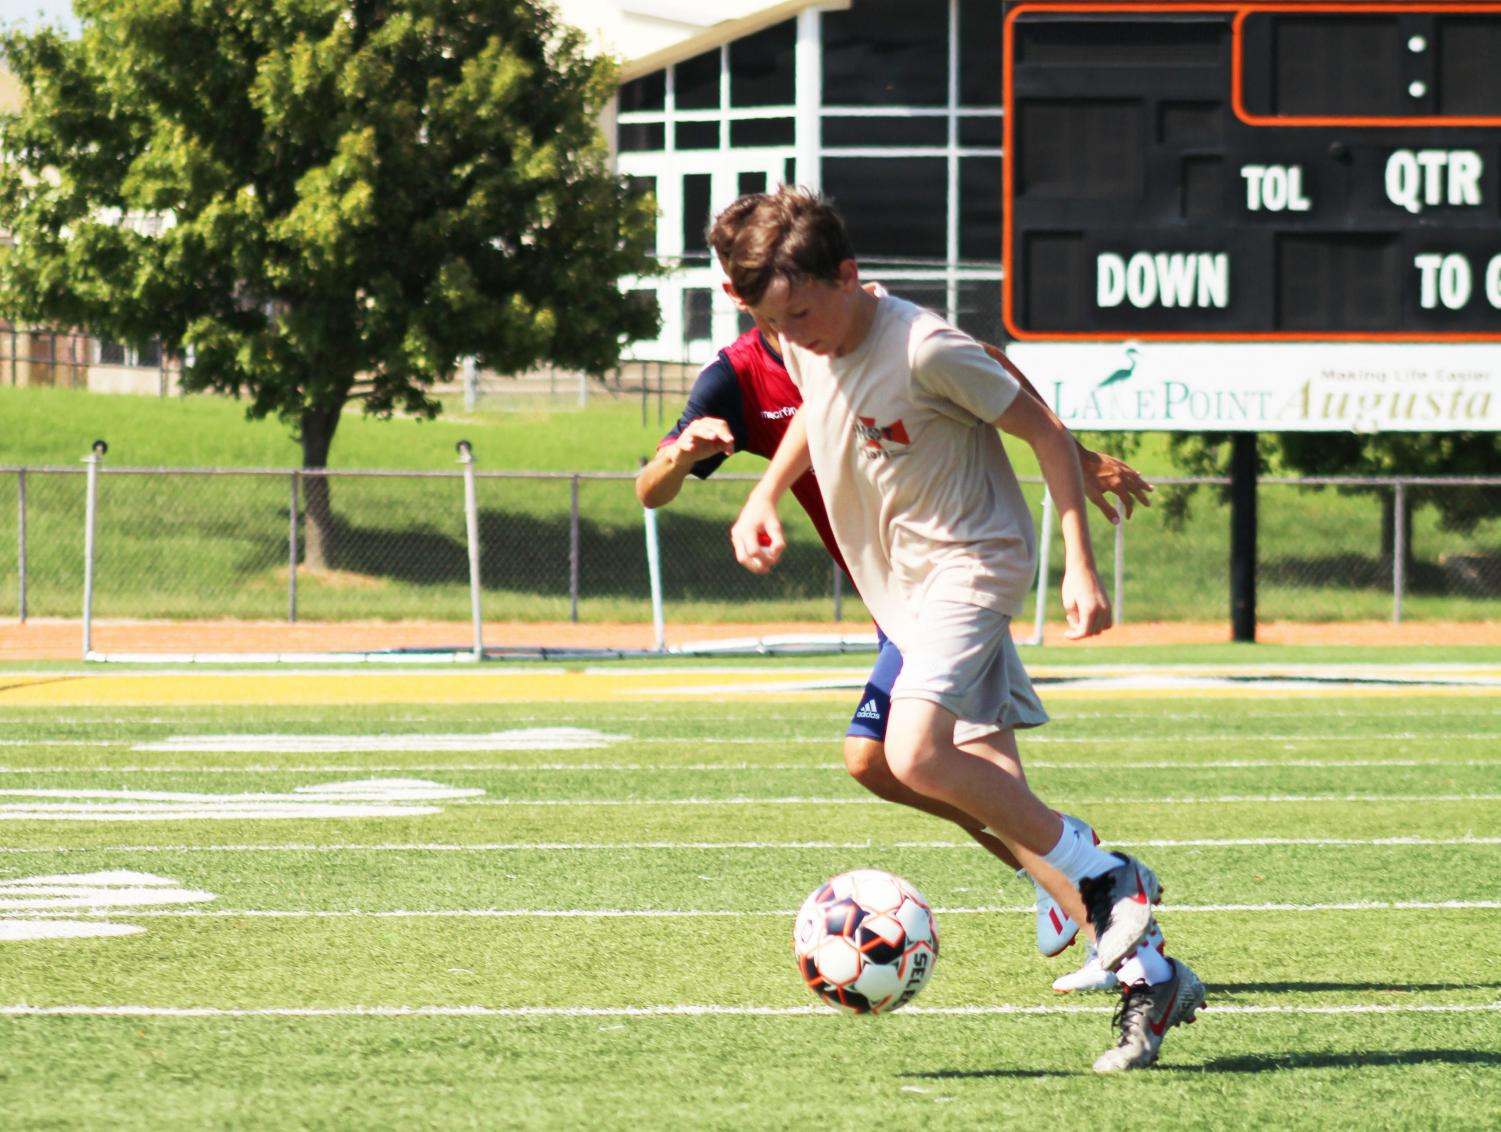 Freshman Kalvin LaPlant dribbles through the defender on the first day of fall sports tryouts. The boys soccer team practiced on the Hiller Stadium field after school.